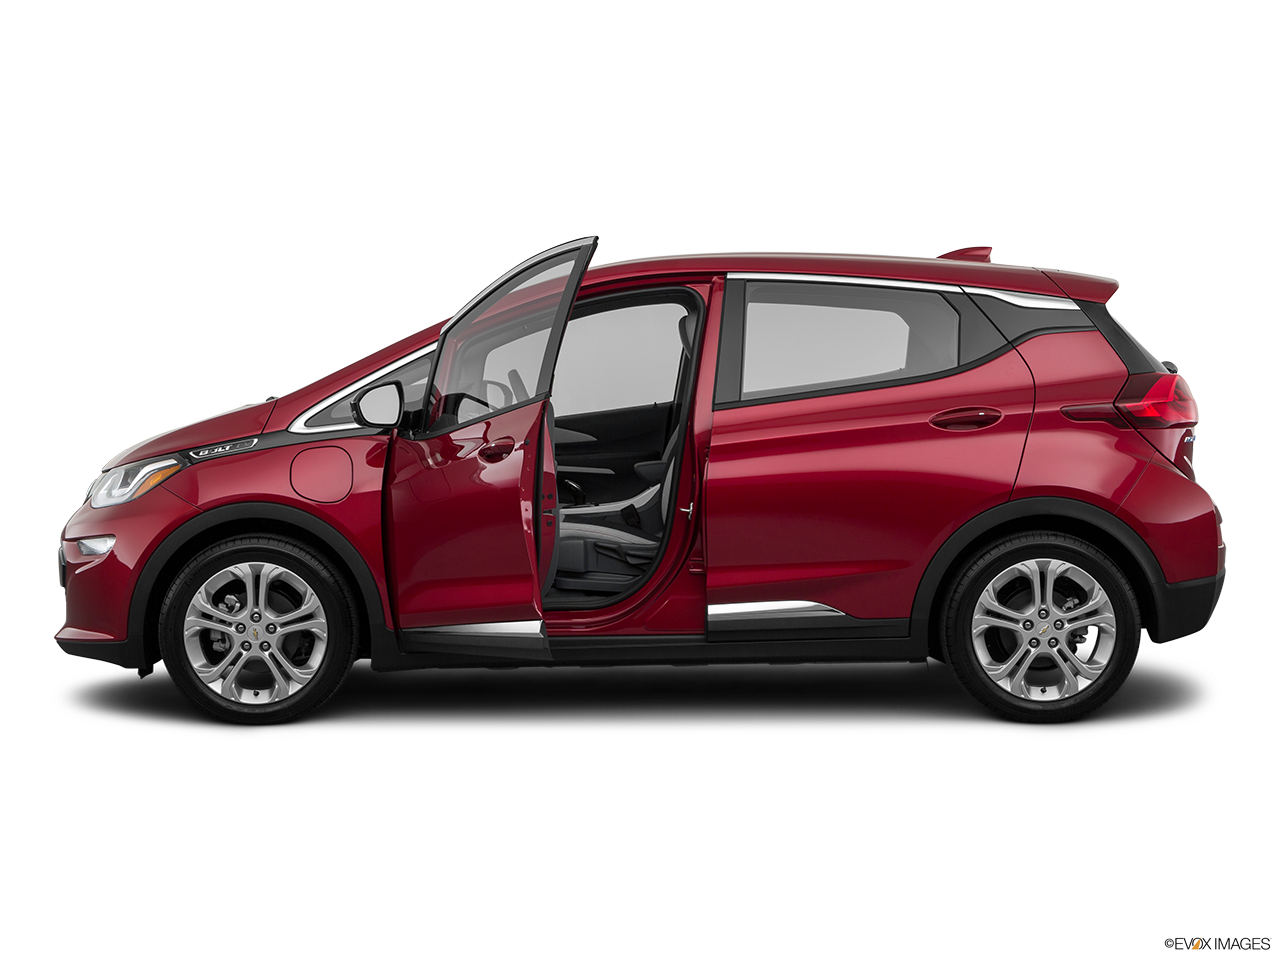 Side view of the Chevrolet Bolt